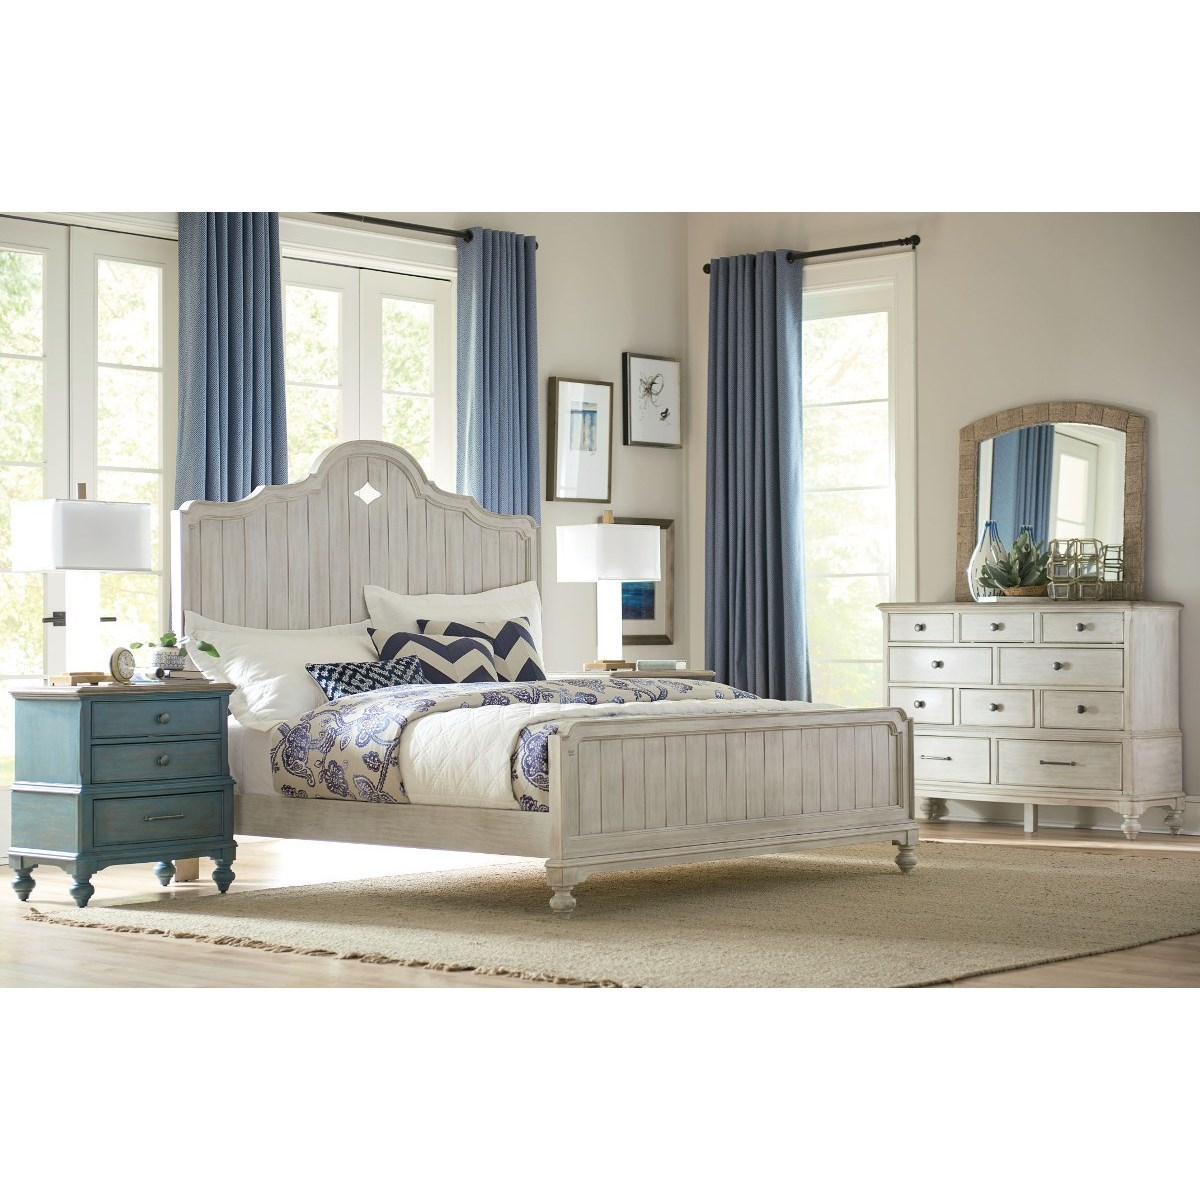 Litchfield Queen Bedroom Group by Living Trends at Sprintz Furniture